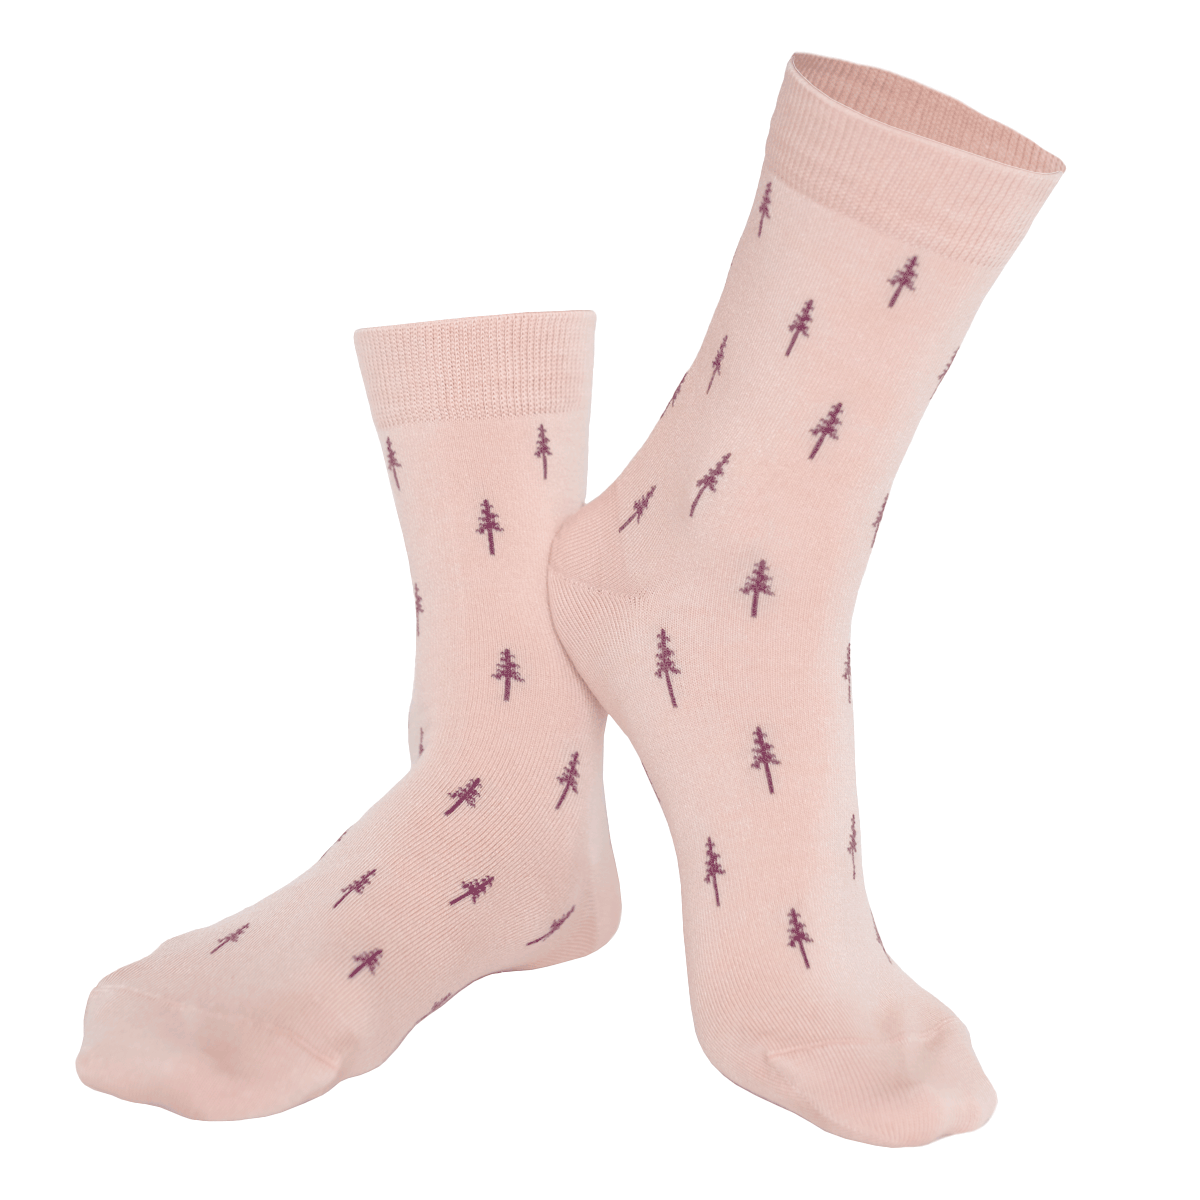 Socks - TreeSocks Standard Allover